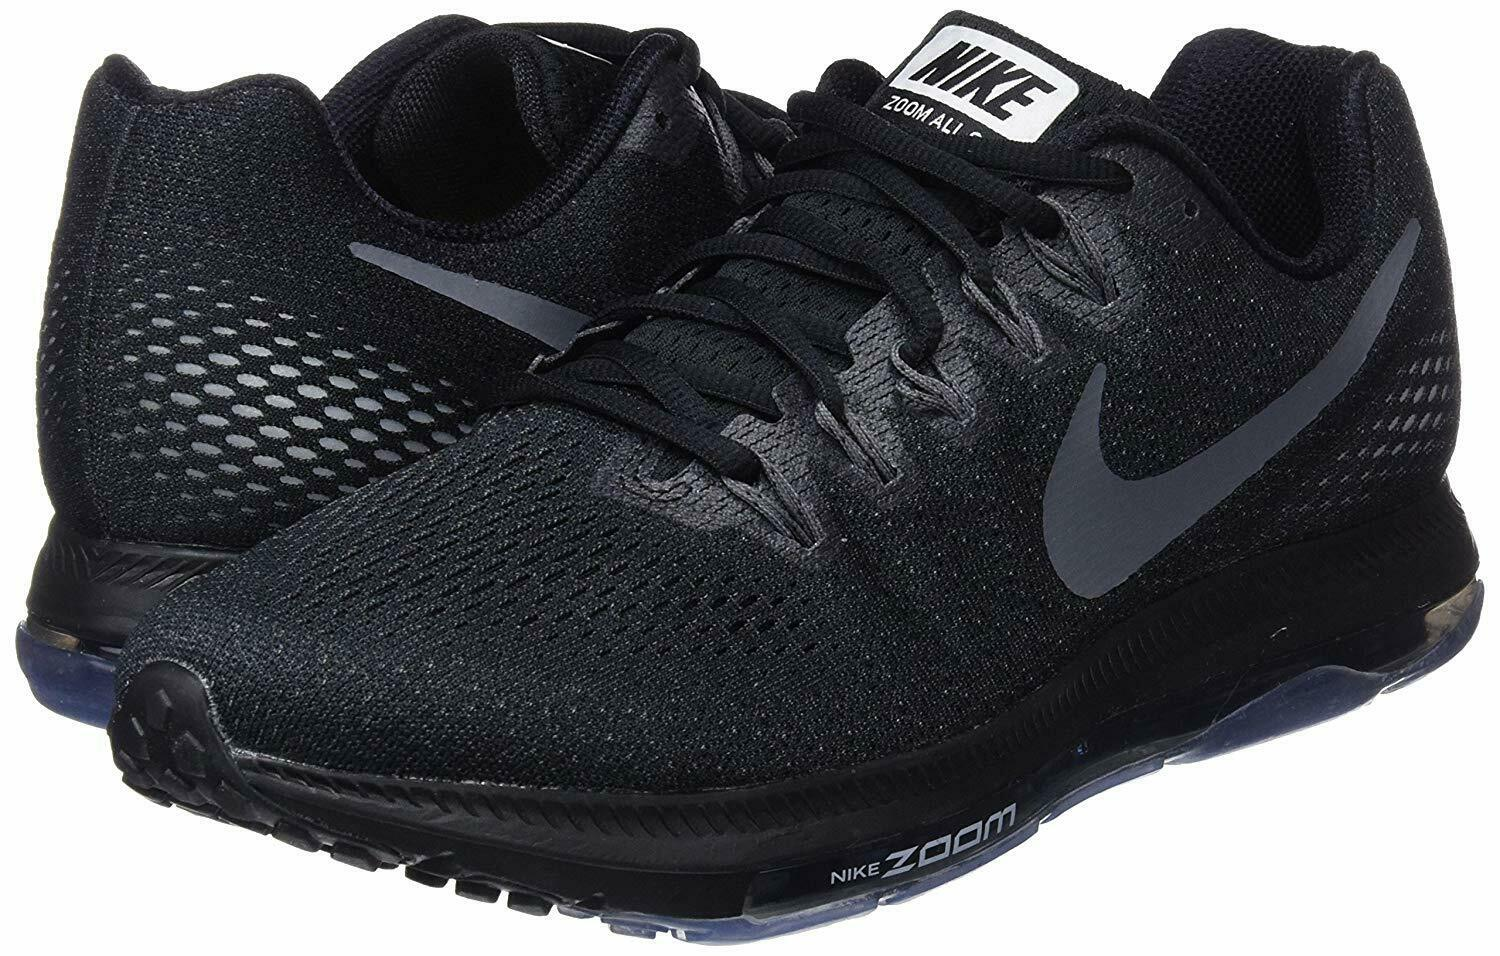 Men's Nike Zoom All Out Low Running Shoes, 878670 001 Mult Sizes BlackDark Grey